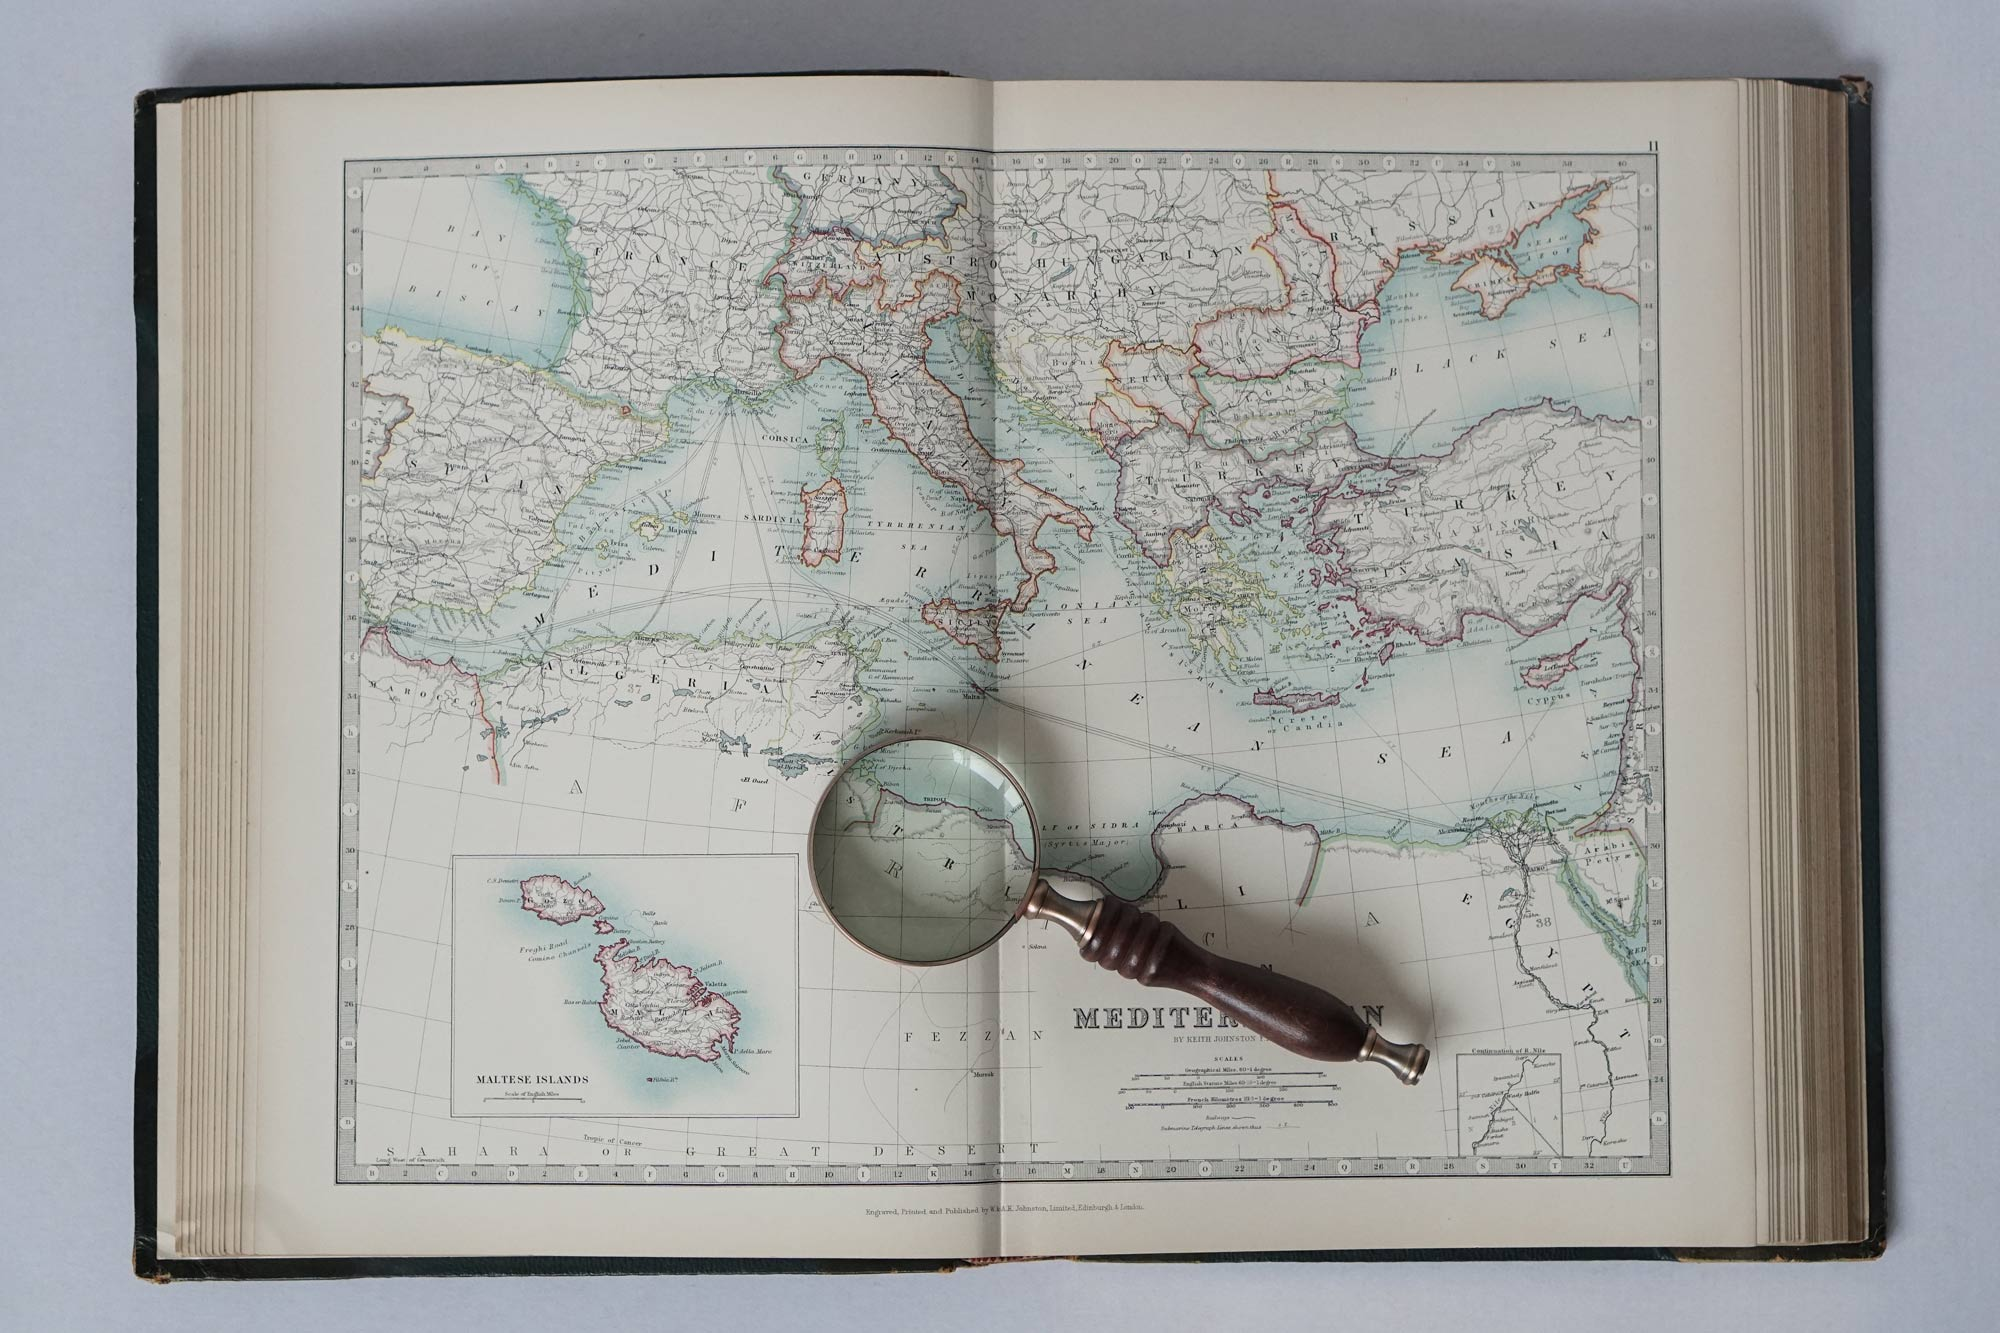 The Handy Royal Atlas of Modern Geography